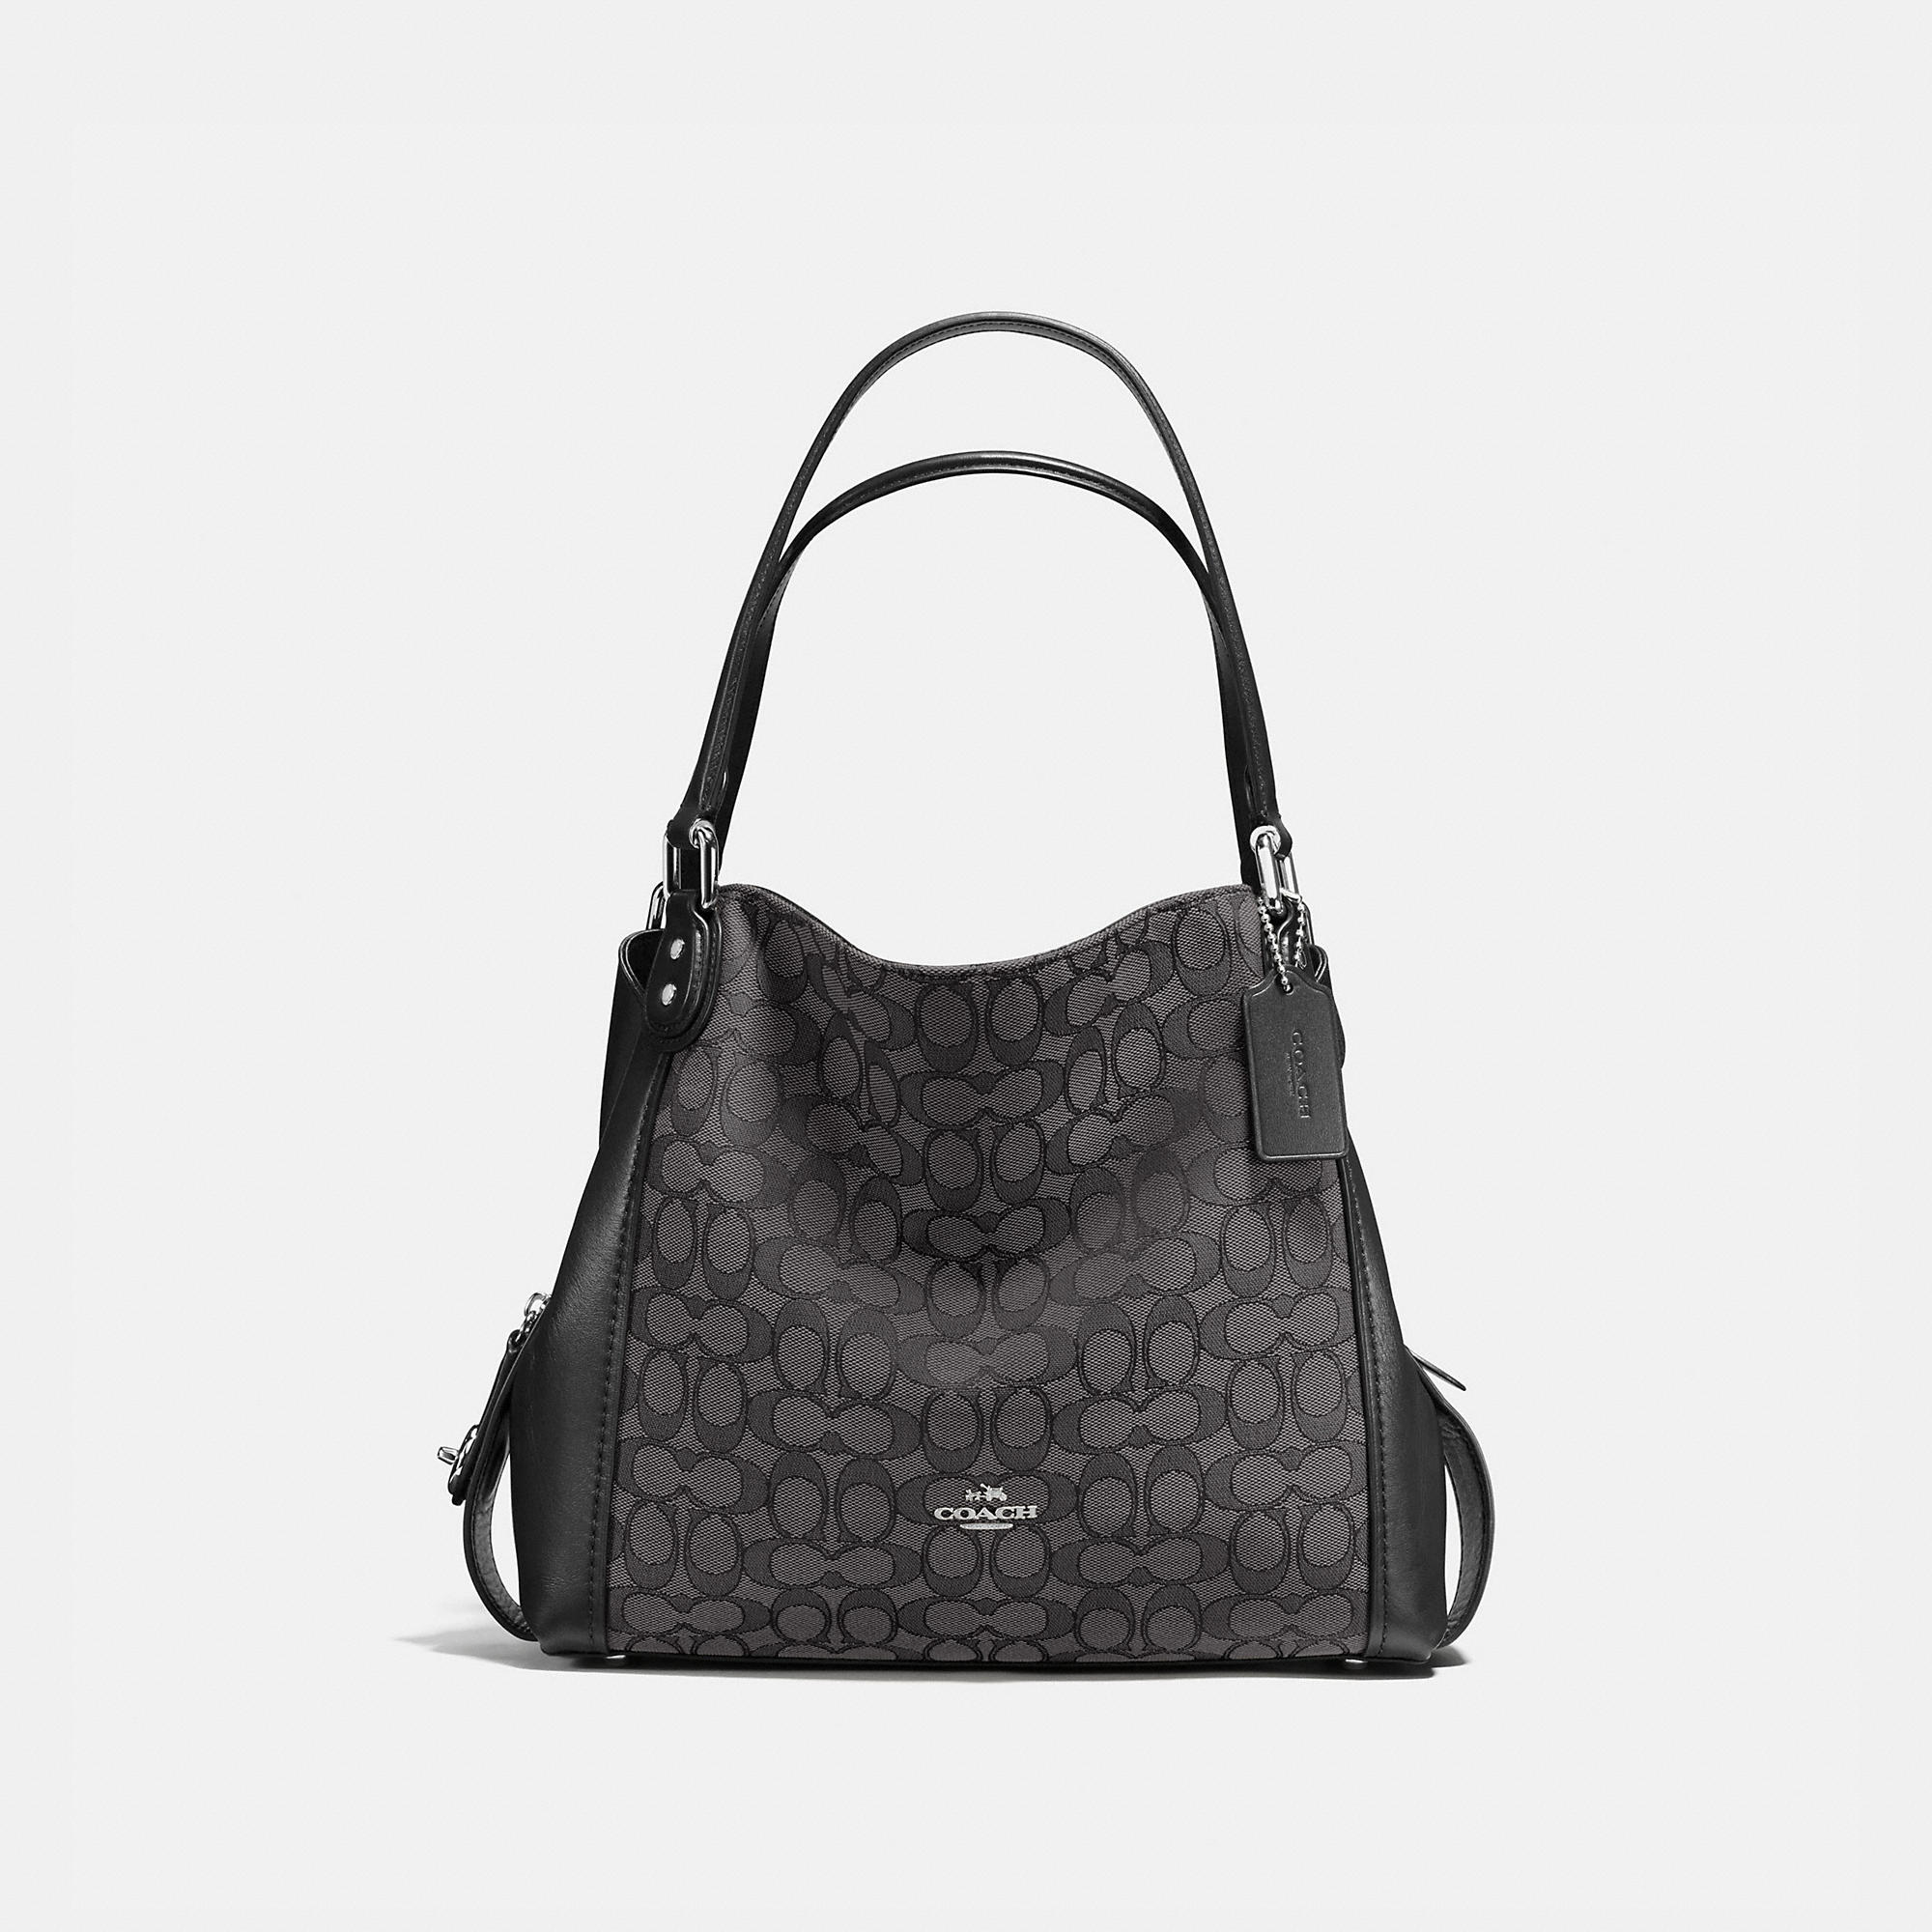 Coach Edie Shoulder Bag 31 In Signature Jacquard